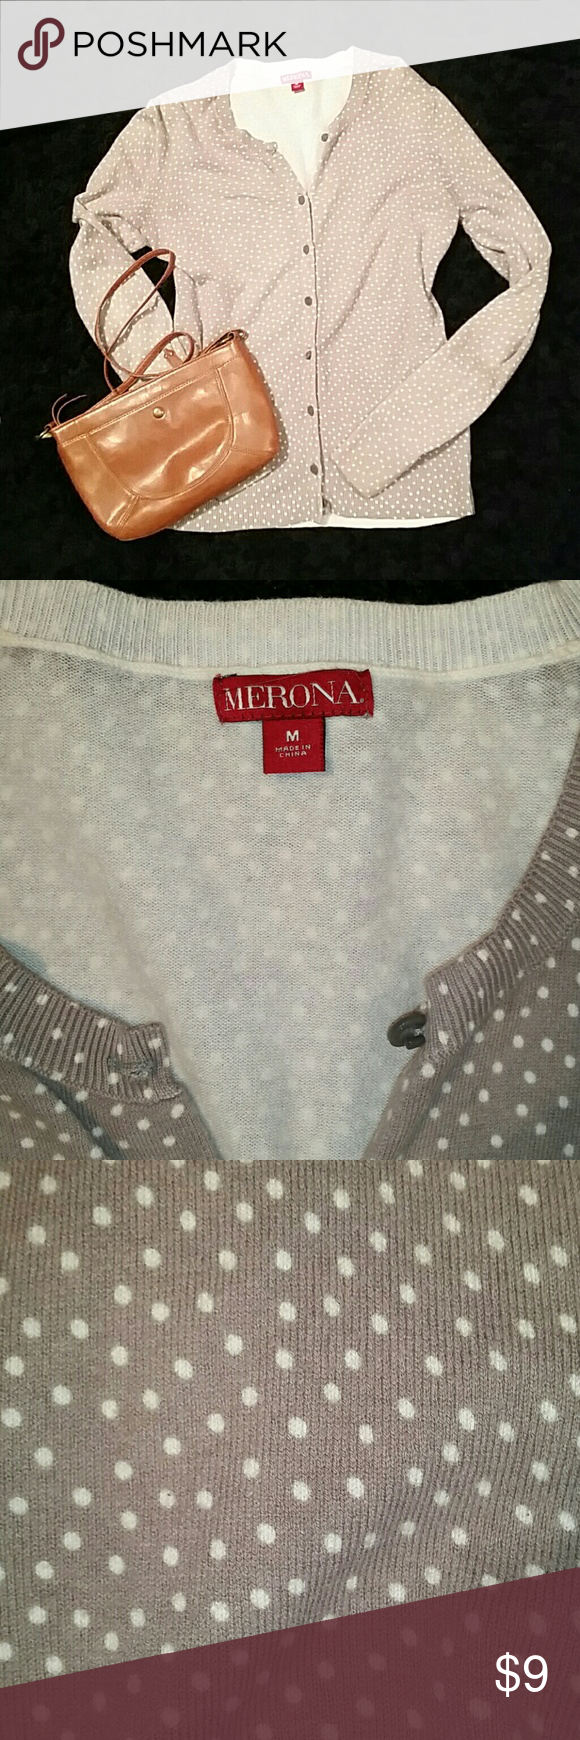 Merona Cardigan - Gray & Cream polka dot - Medium Merona Cardigan - Gray & Cream polka dot - Medium Merona Sweaters Cardigans